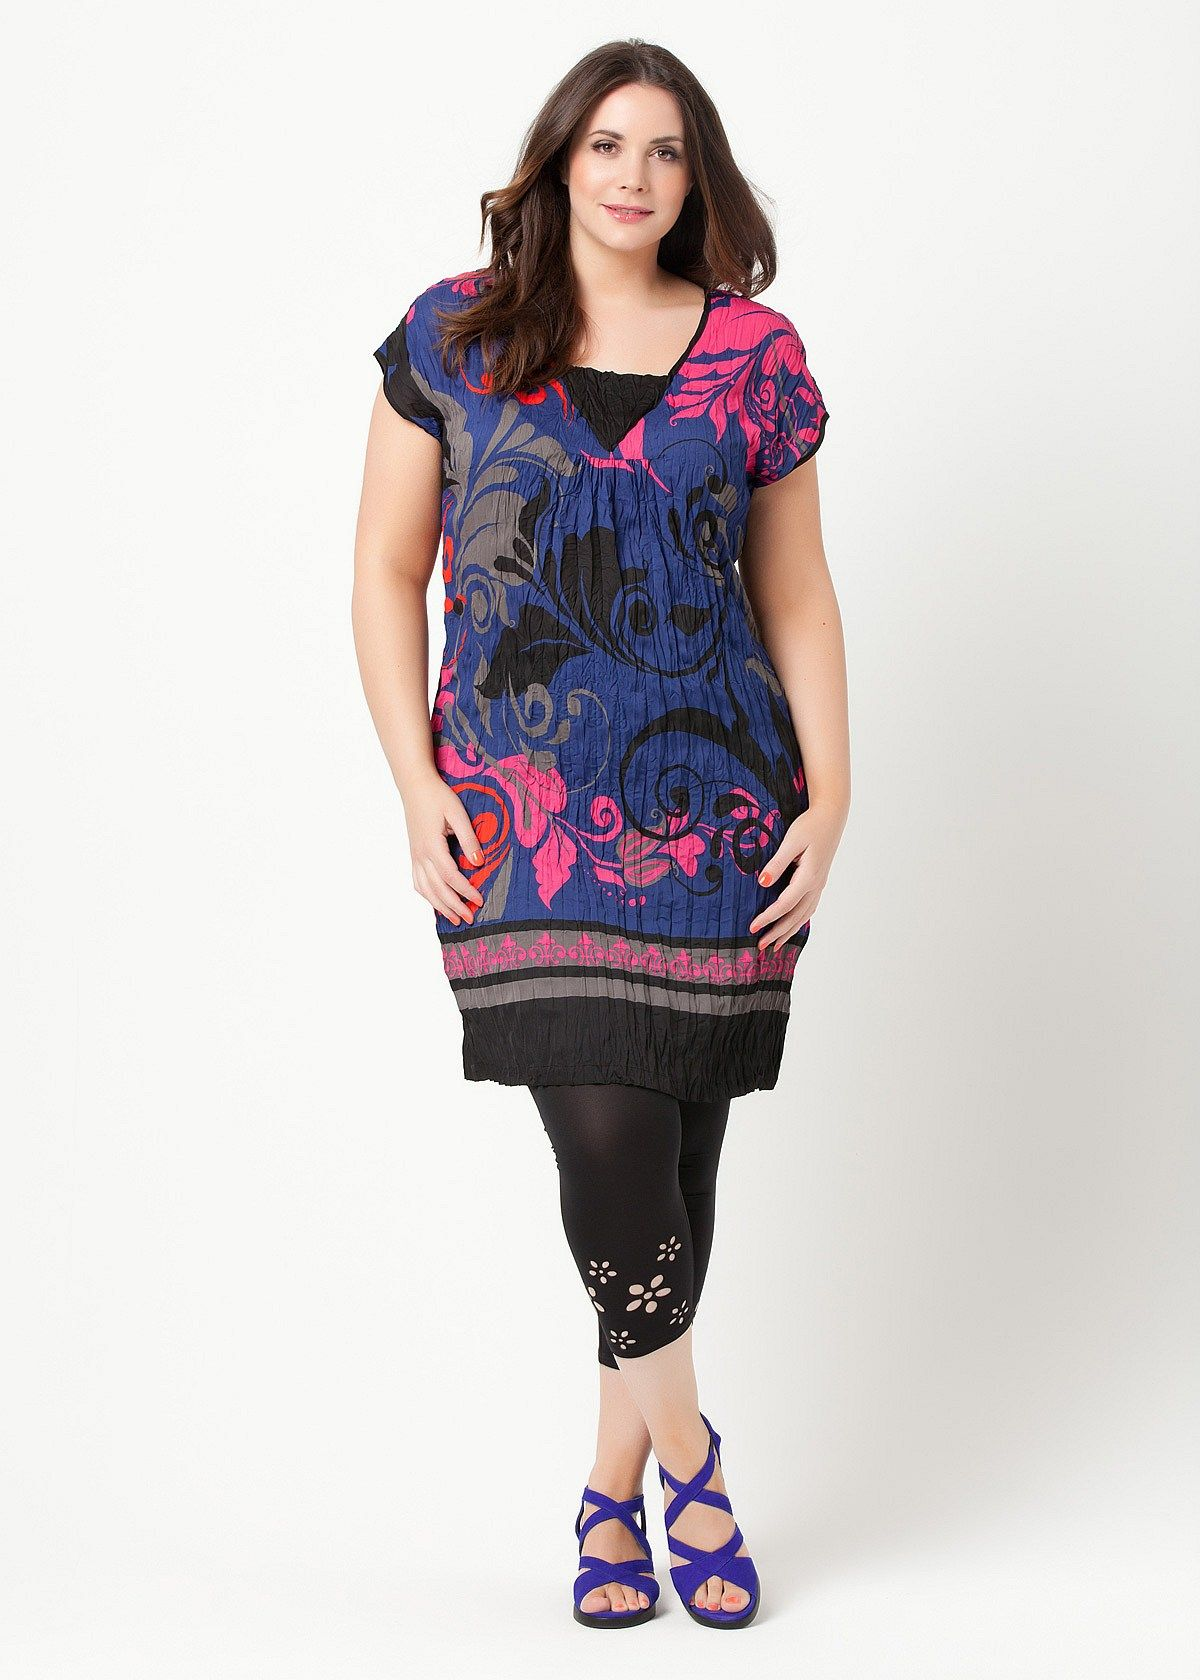 Big sizes womens clothing clothes for larger size women